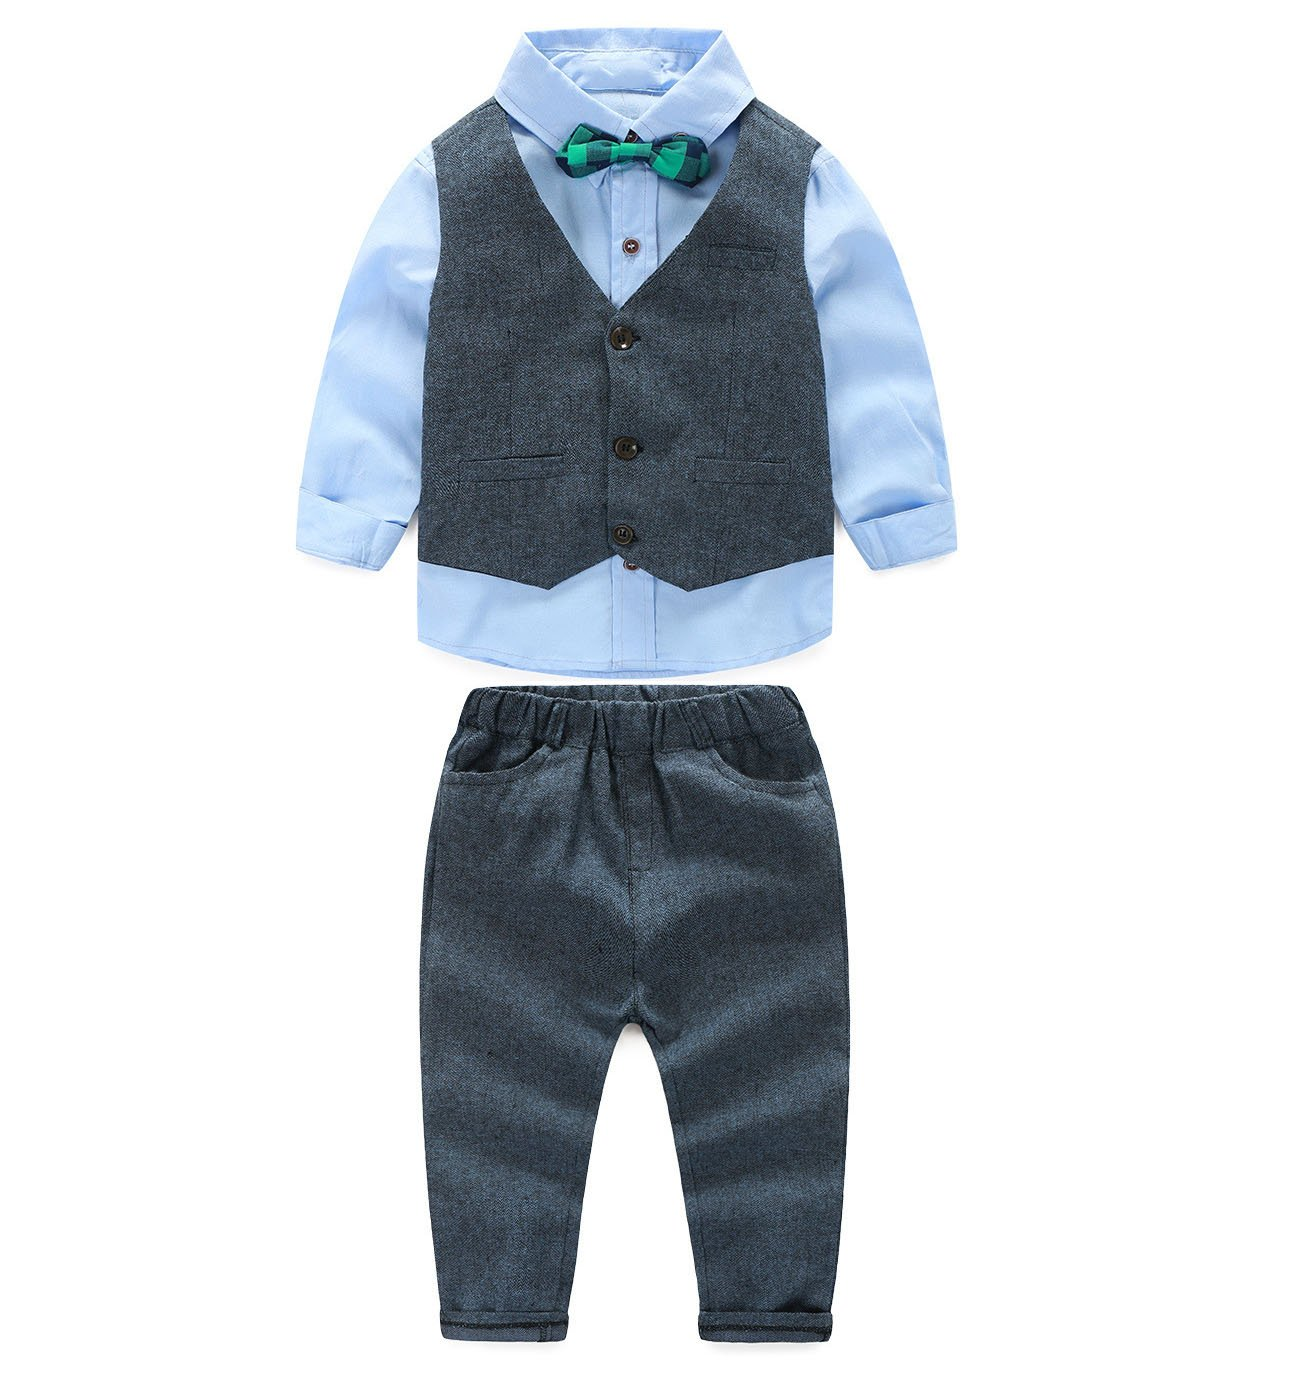 JIANLANPTT 3pcs Baby Boy Gentleman Set Vest Shirt and Pant Formal Suit